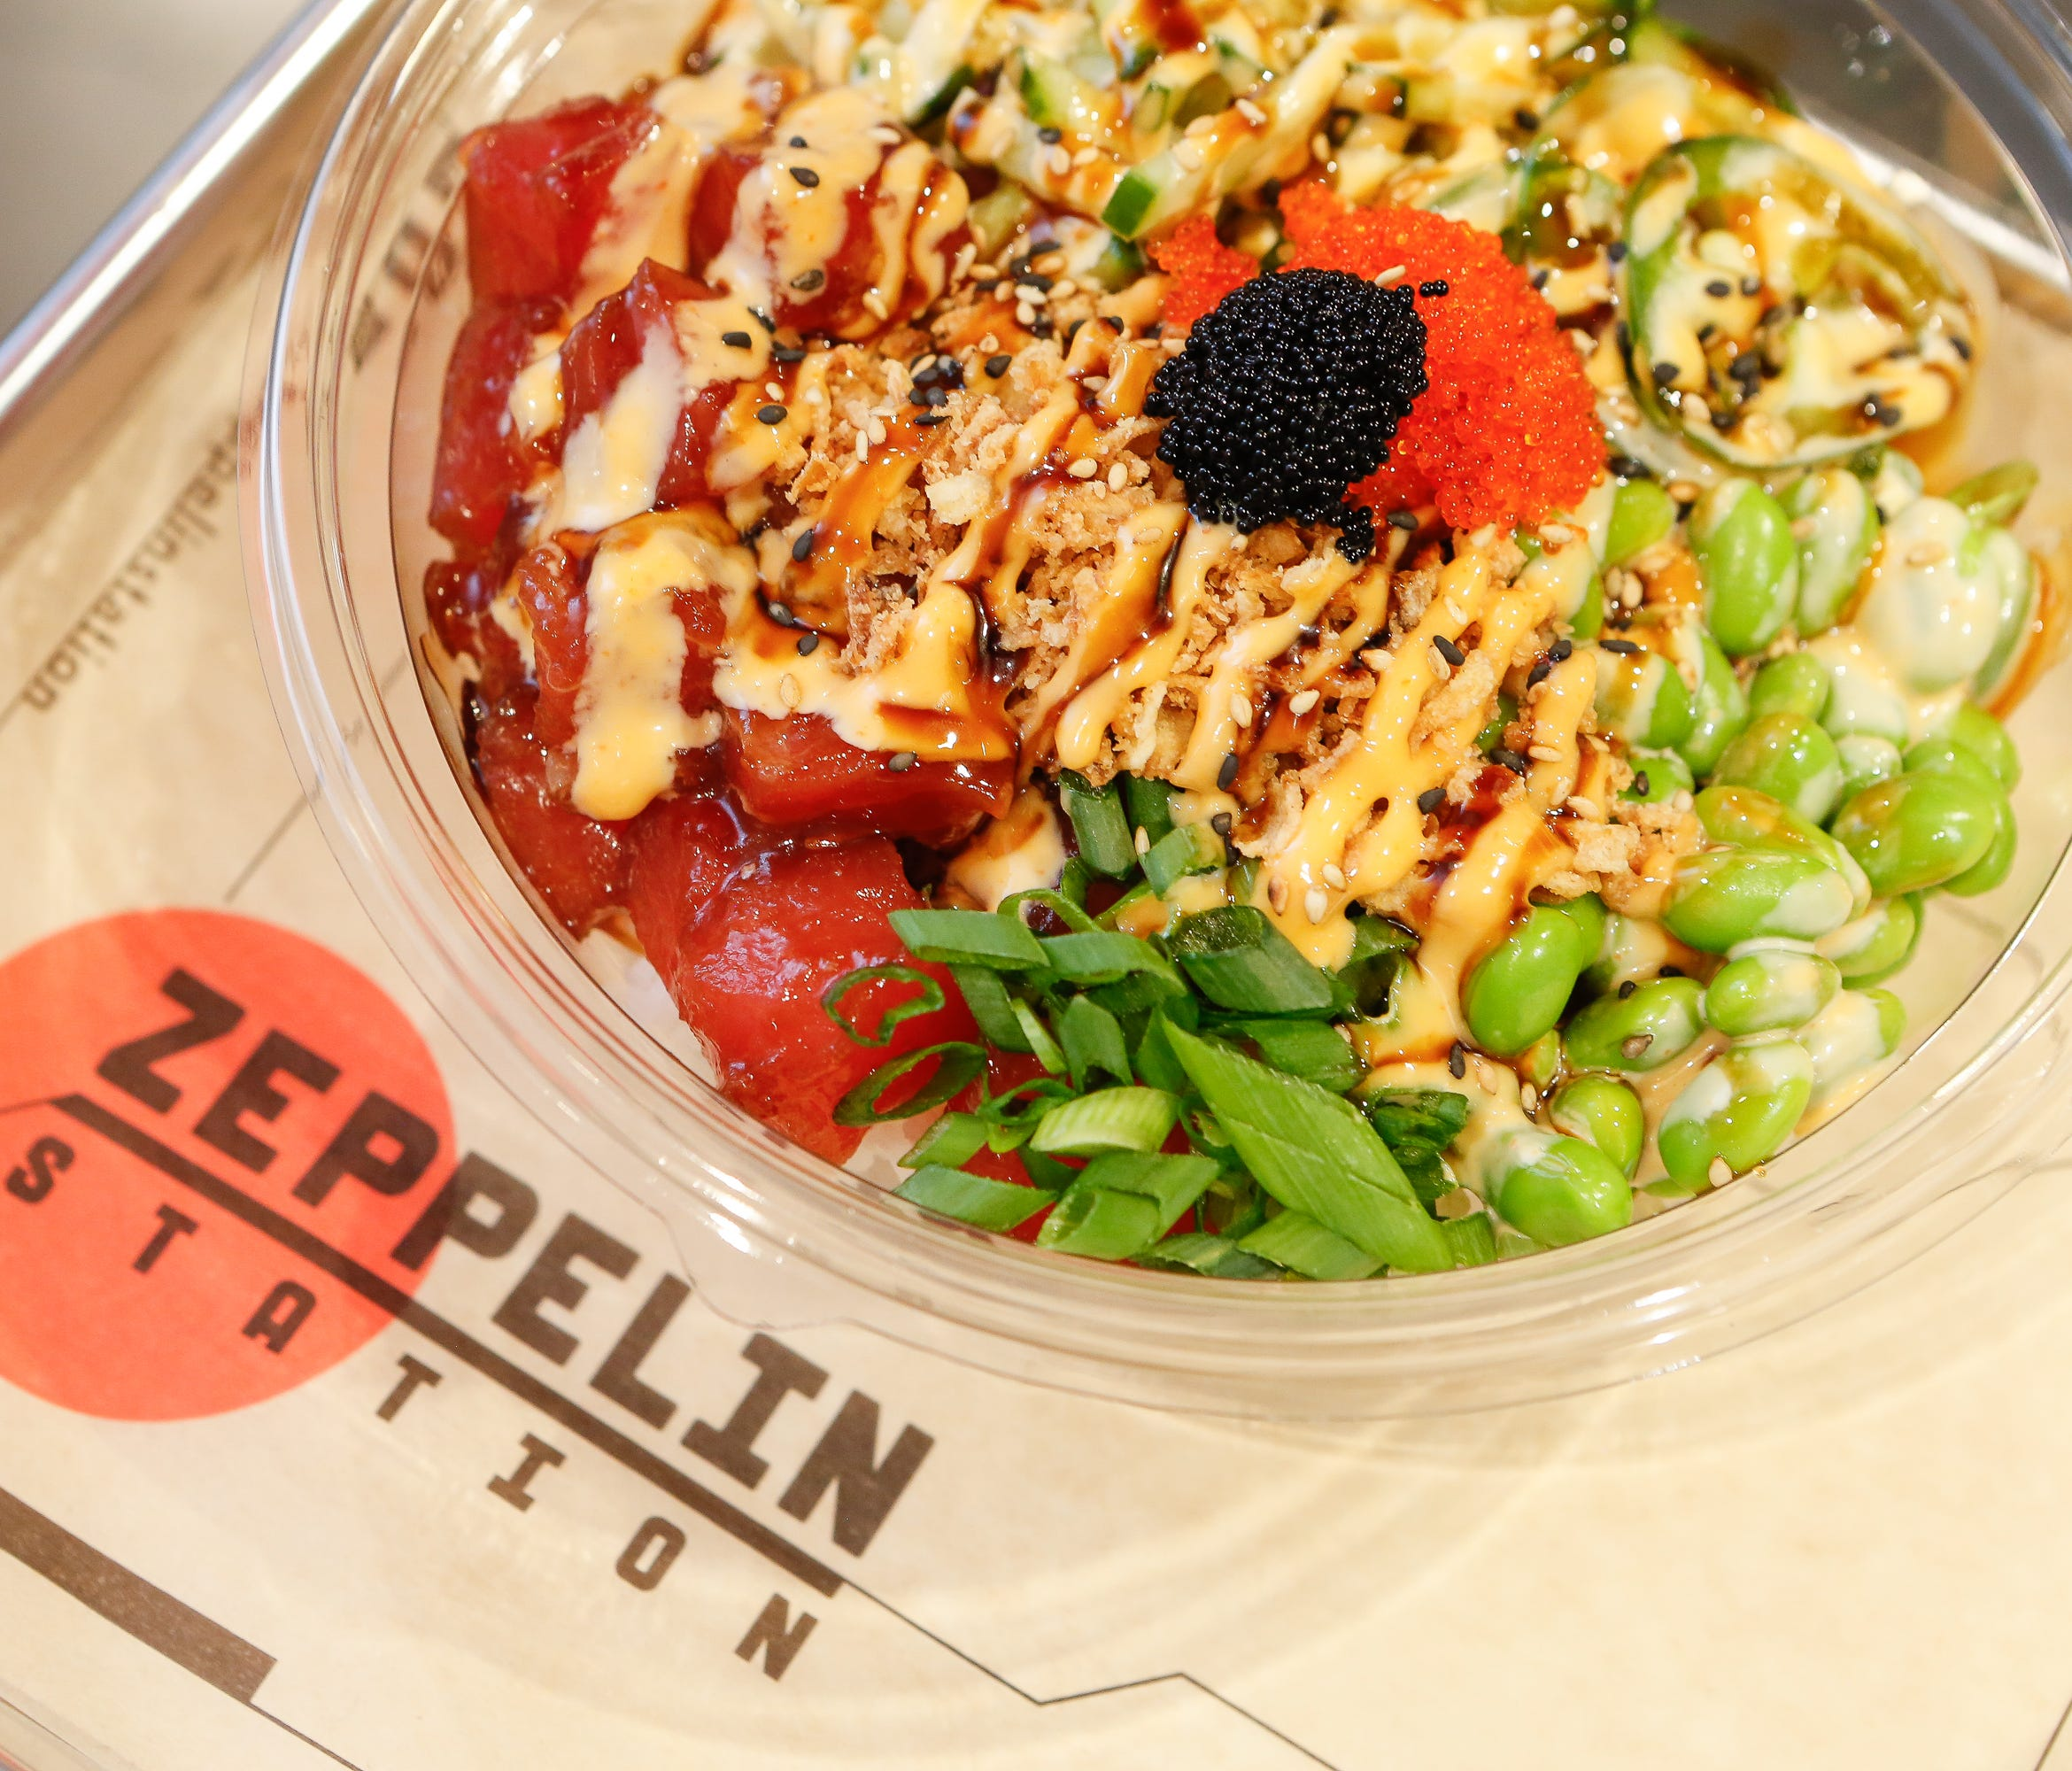 Aloha Poke offers three sizes, three bases and endless combinations of toppings (including vegetarian options).